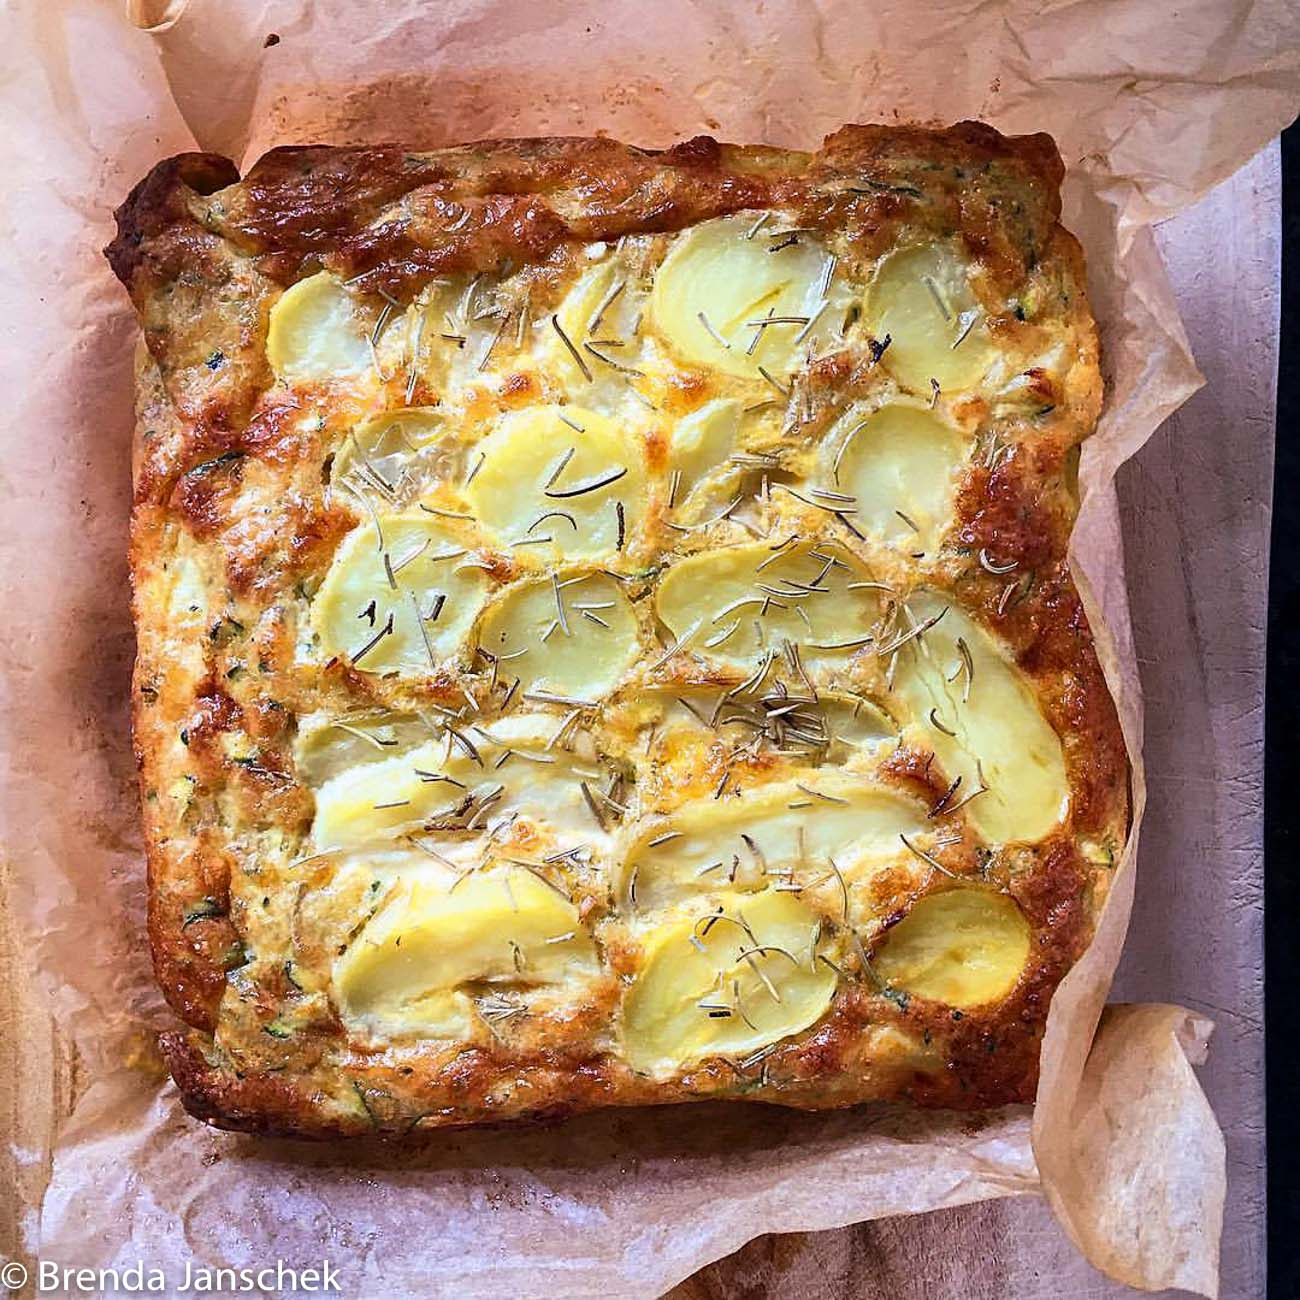 Brenda-Janschek-Recipe-Potato-Zucchini-Slice-Feature.jpg